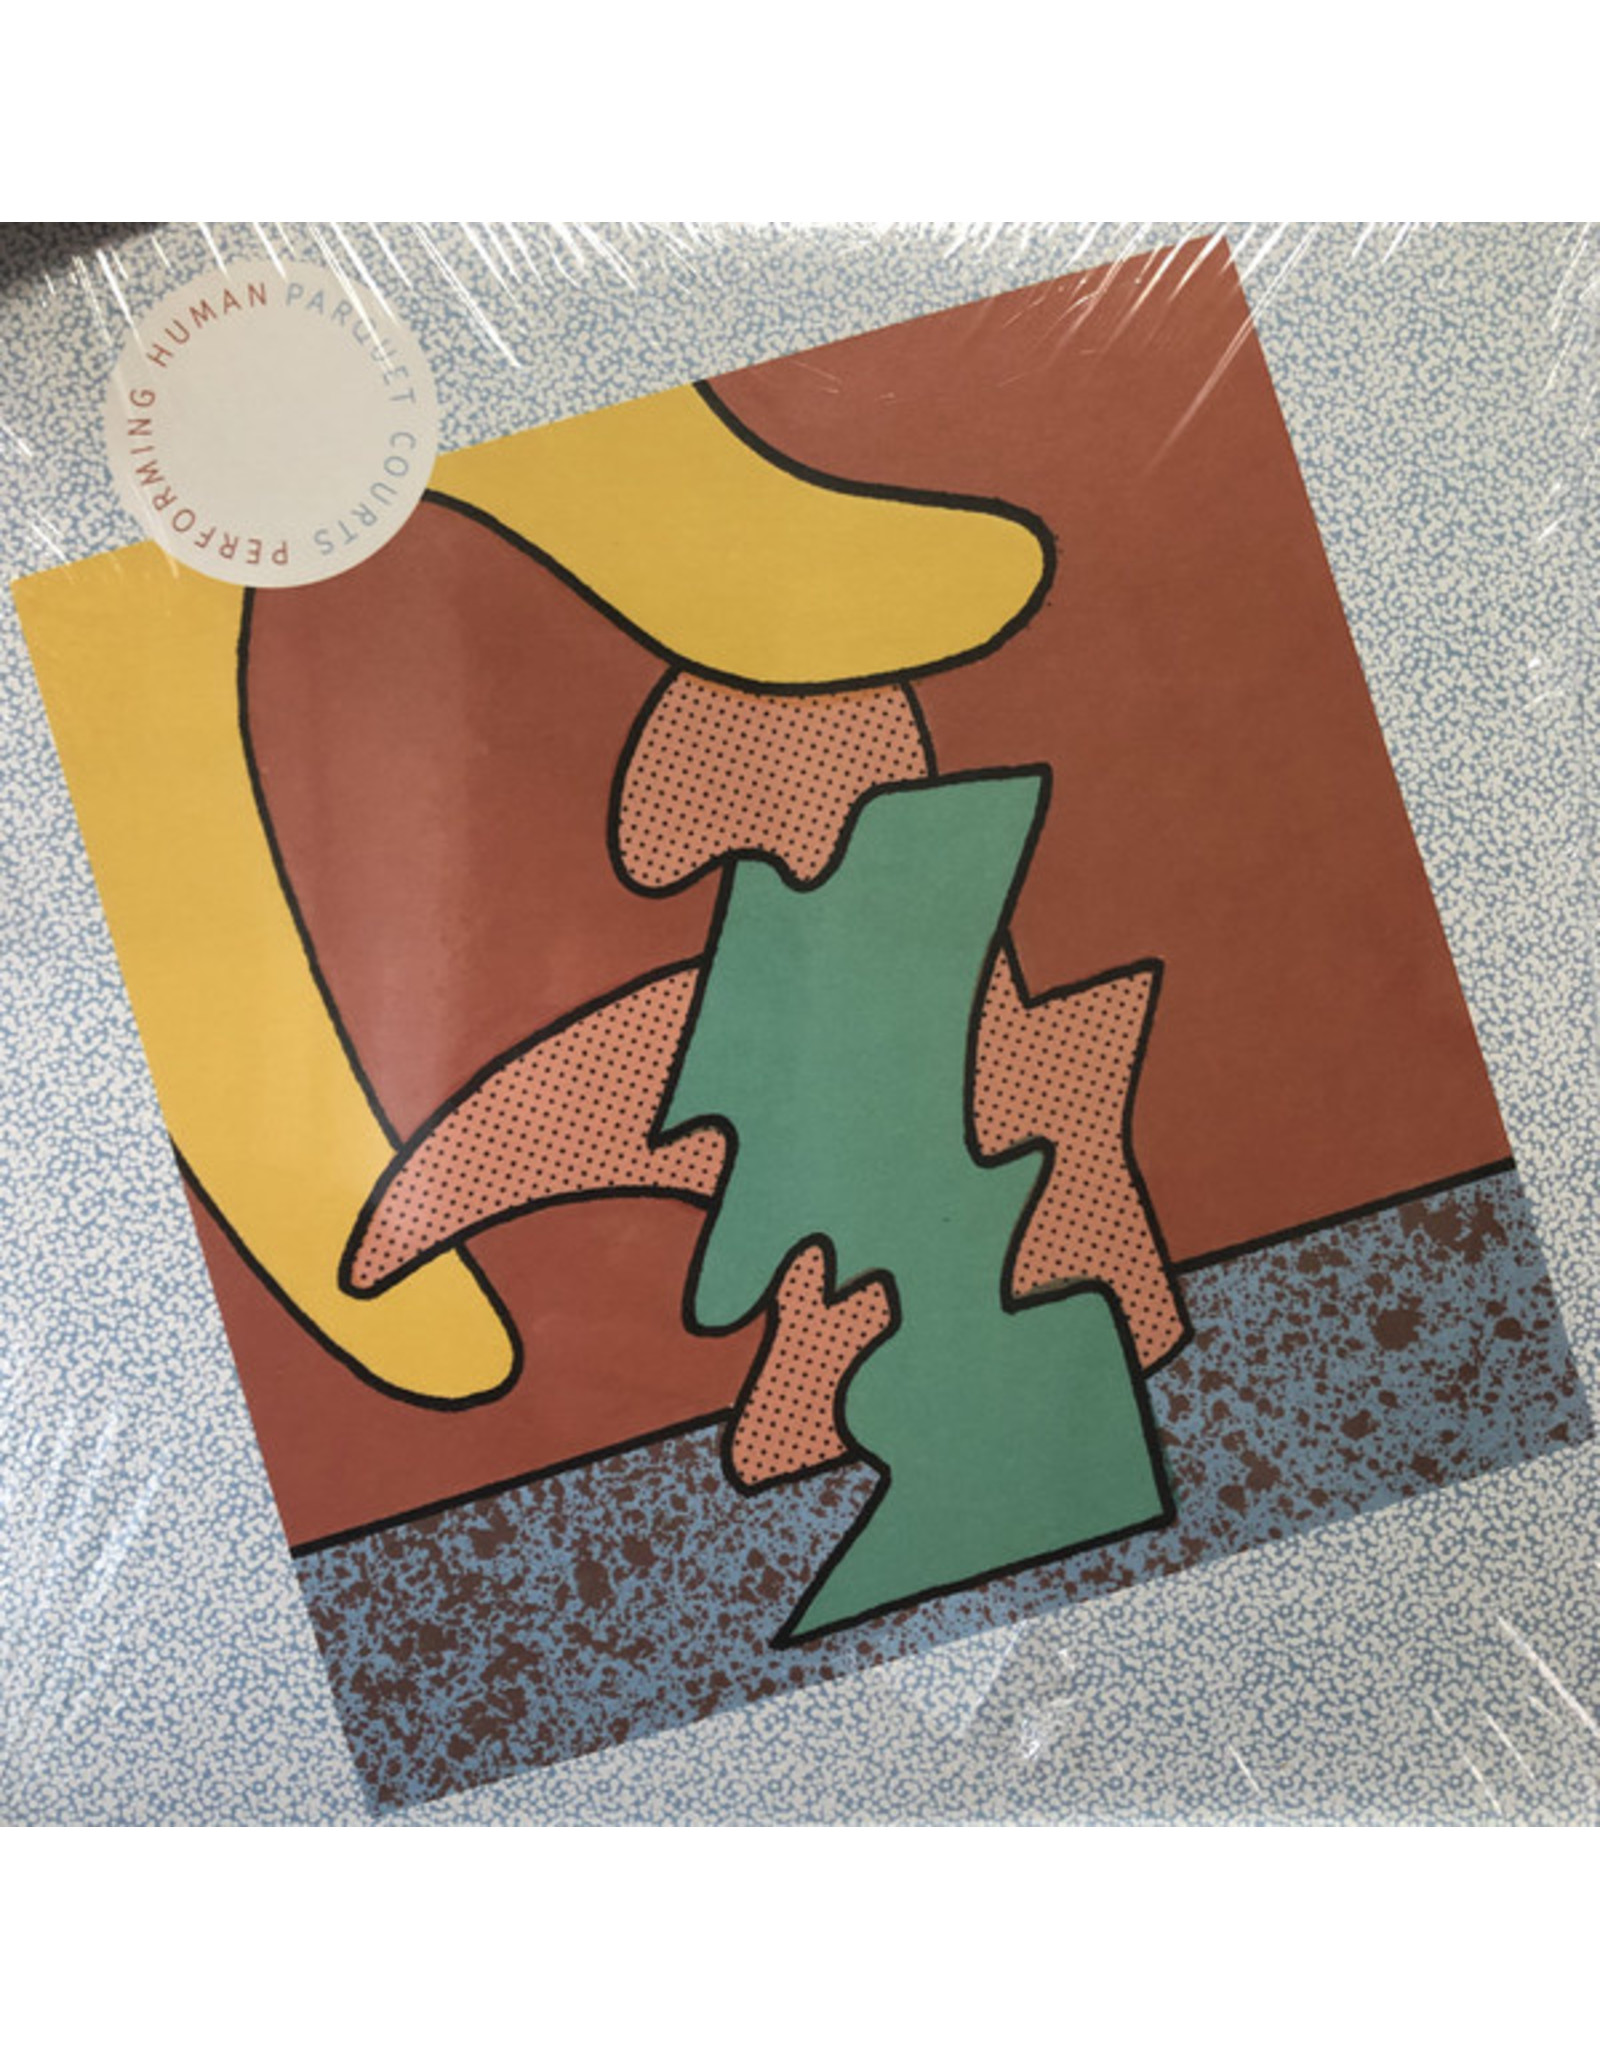 New Vinyl Parquet Courts - Performing Human 12""